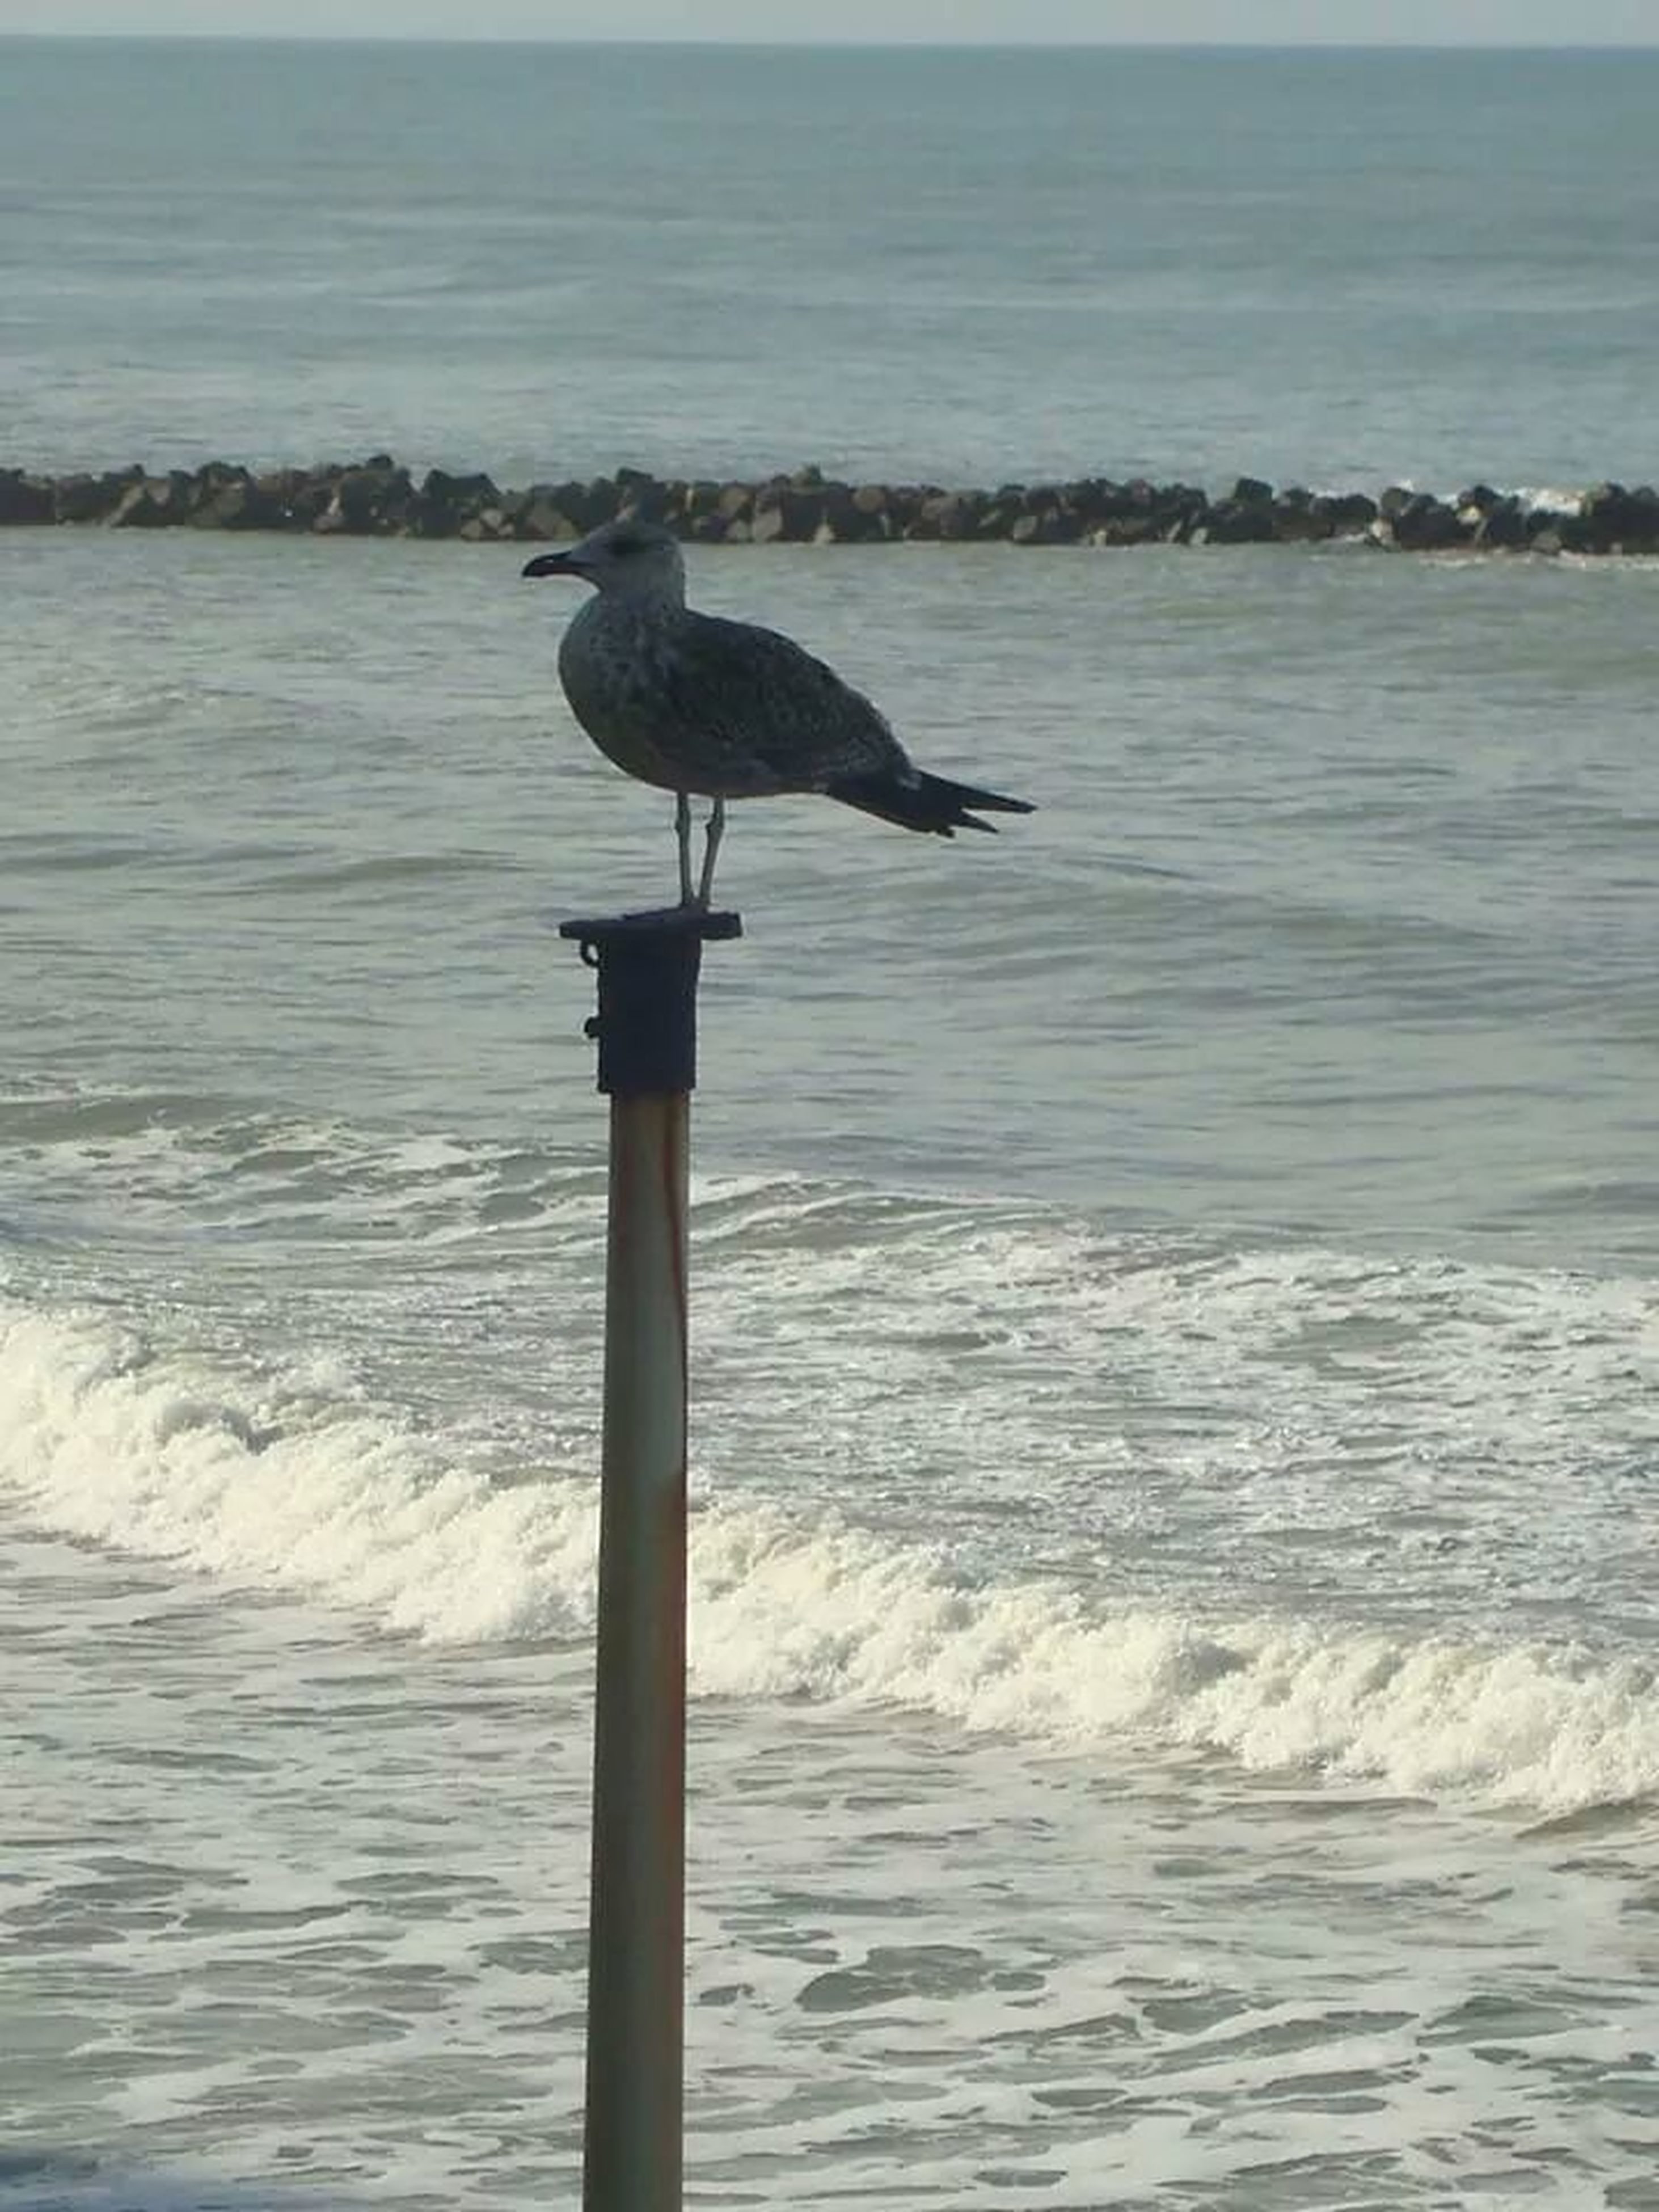 bird, sea, water, animal themes, animals in the wild, one animal, wildlife, seagull, perching, horizon over water, wave, nature, rippled, wooden post, beauty in nature, day, pole, outdoors, waterfront, full length